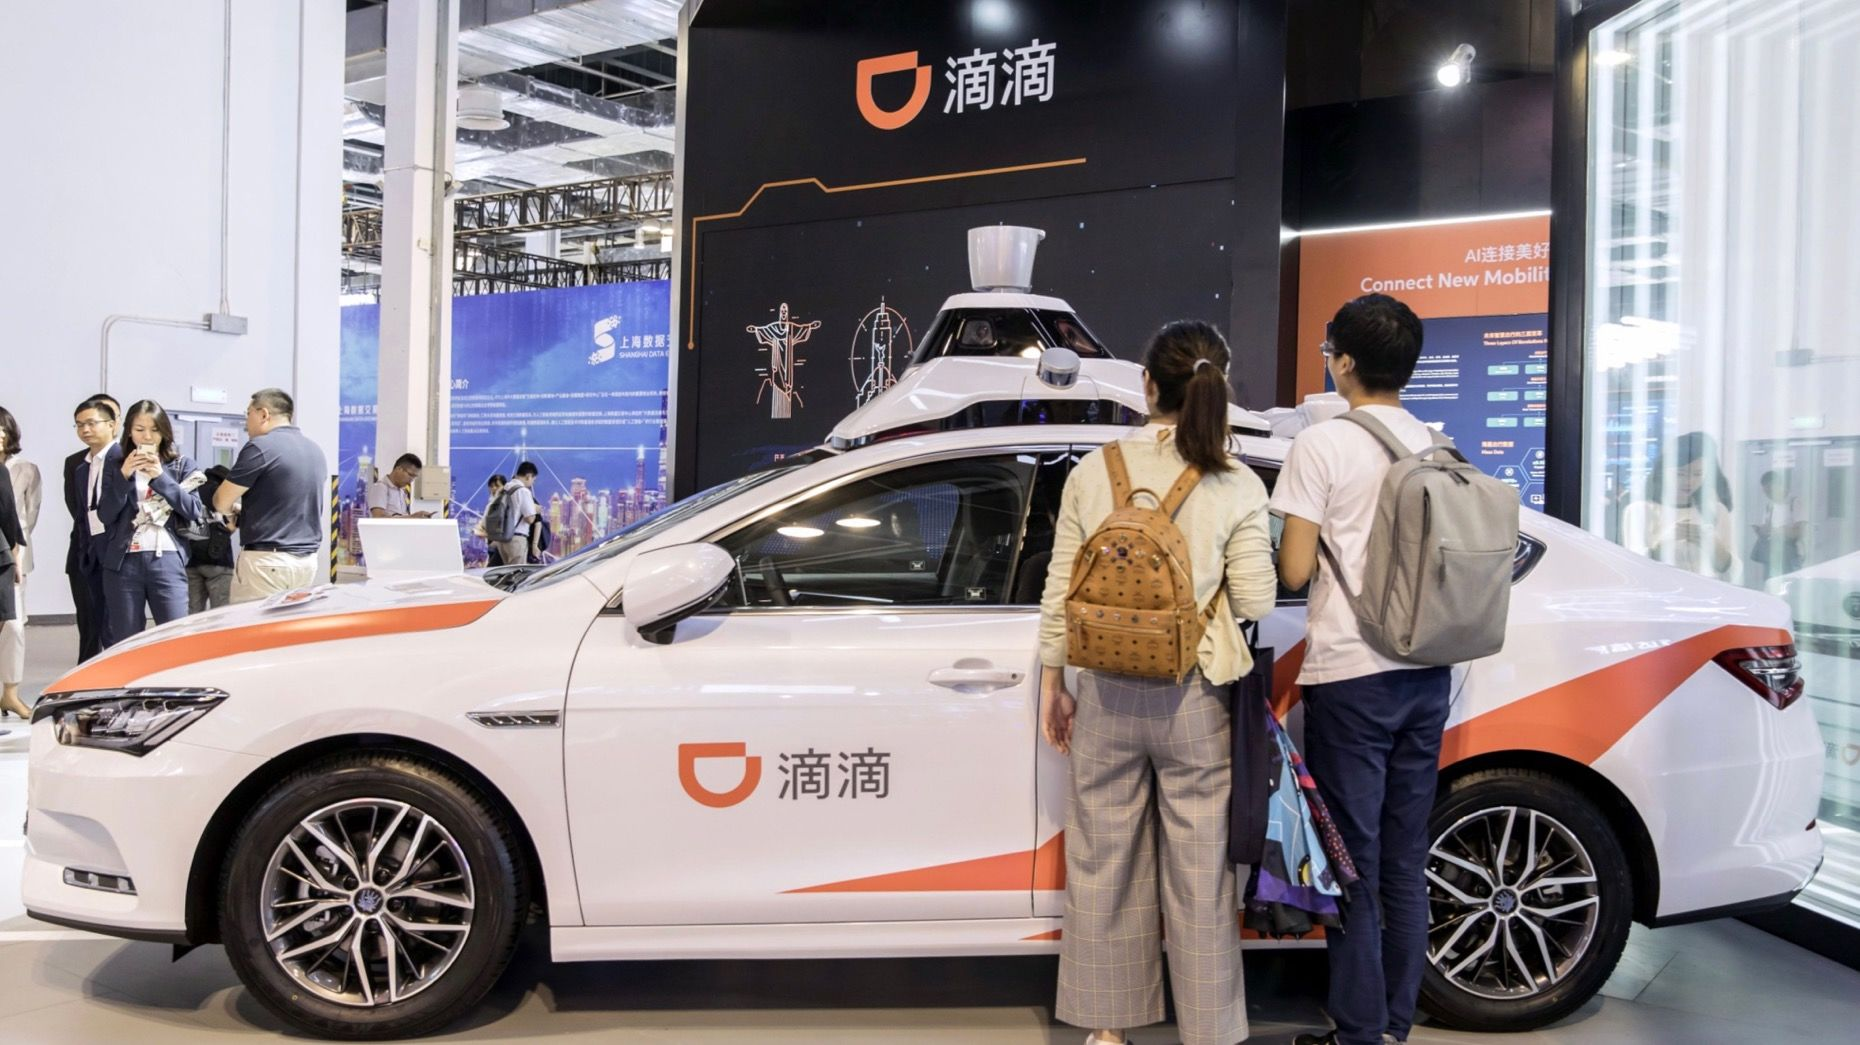 Attendees looked at a Didi autonomous vehicle at the World Artificial Intelligence Conference in Shanghai in August. Photo: Bloomberg